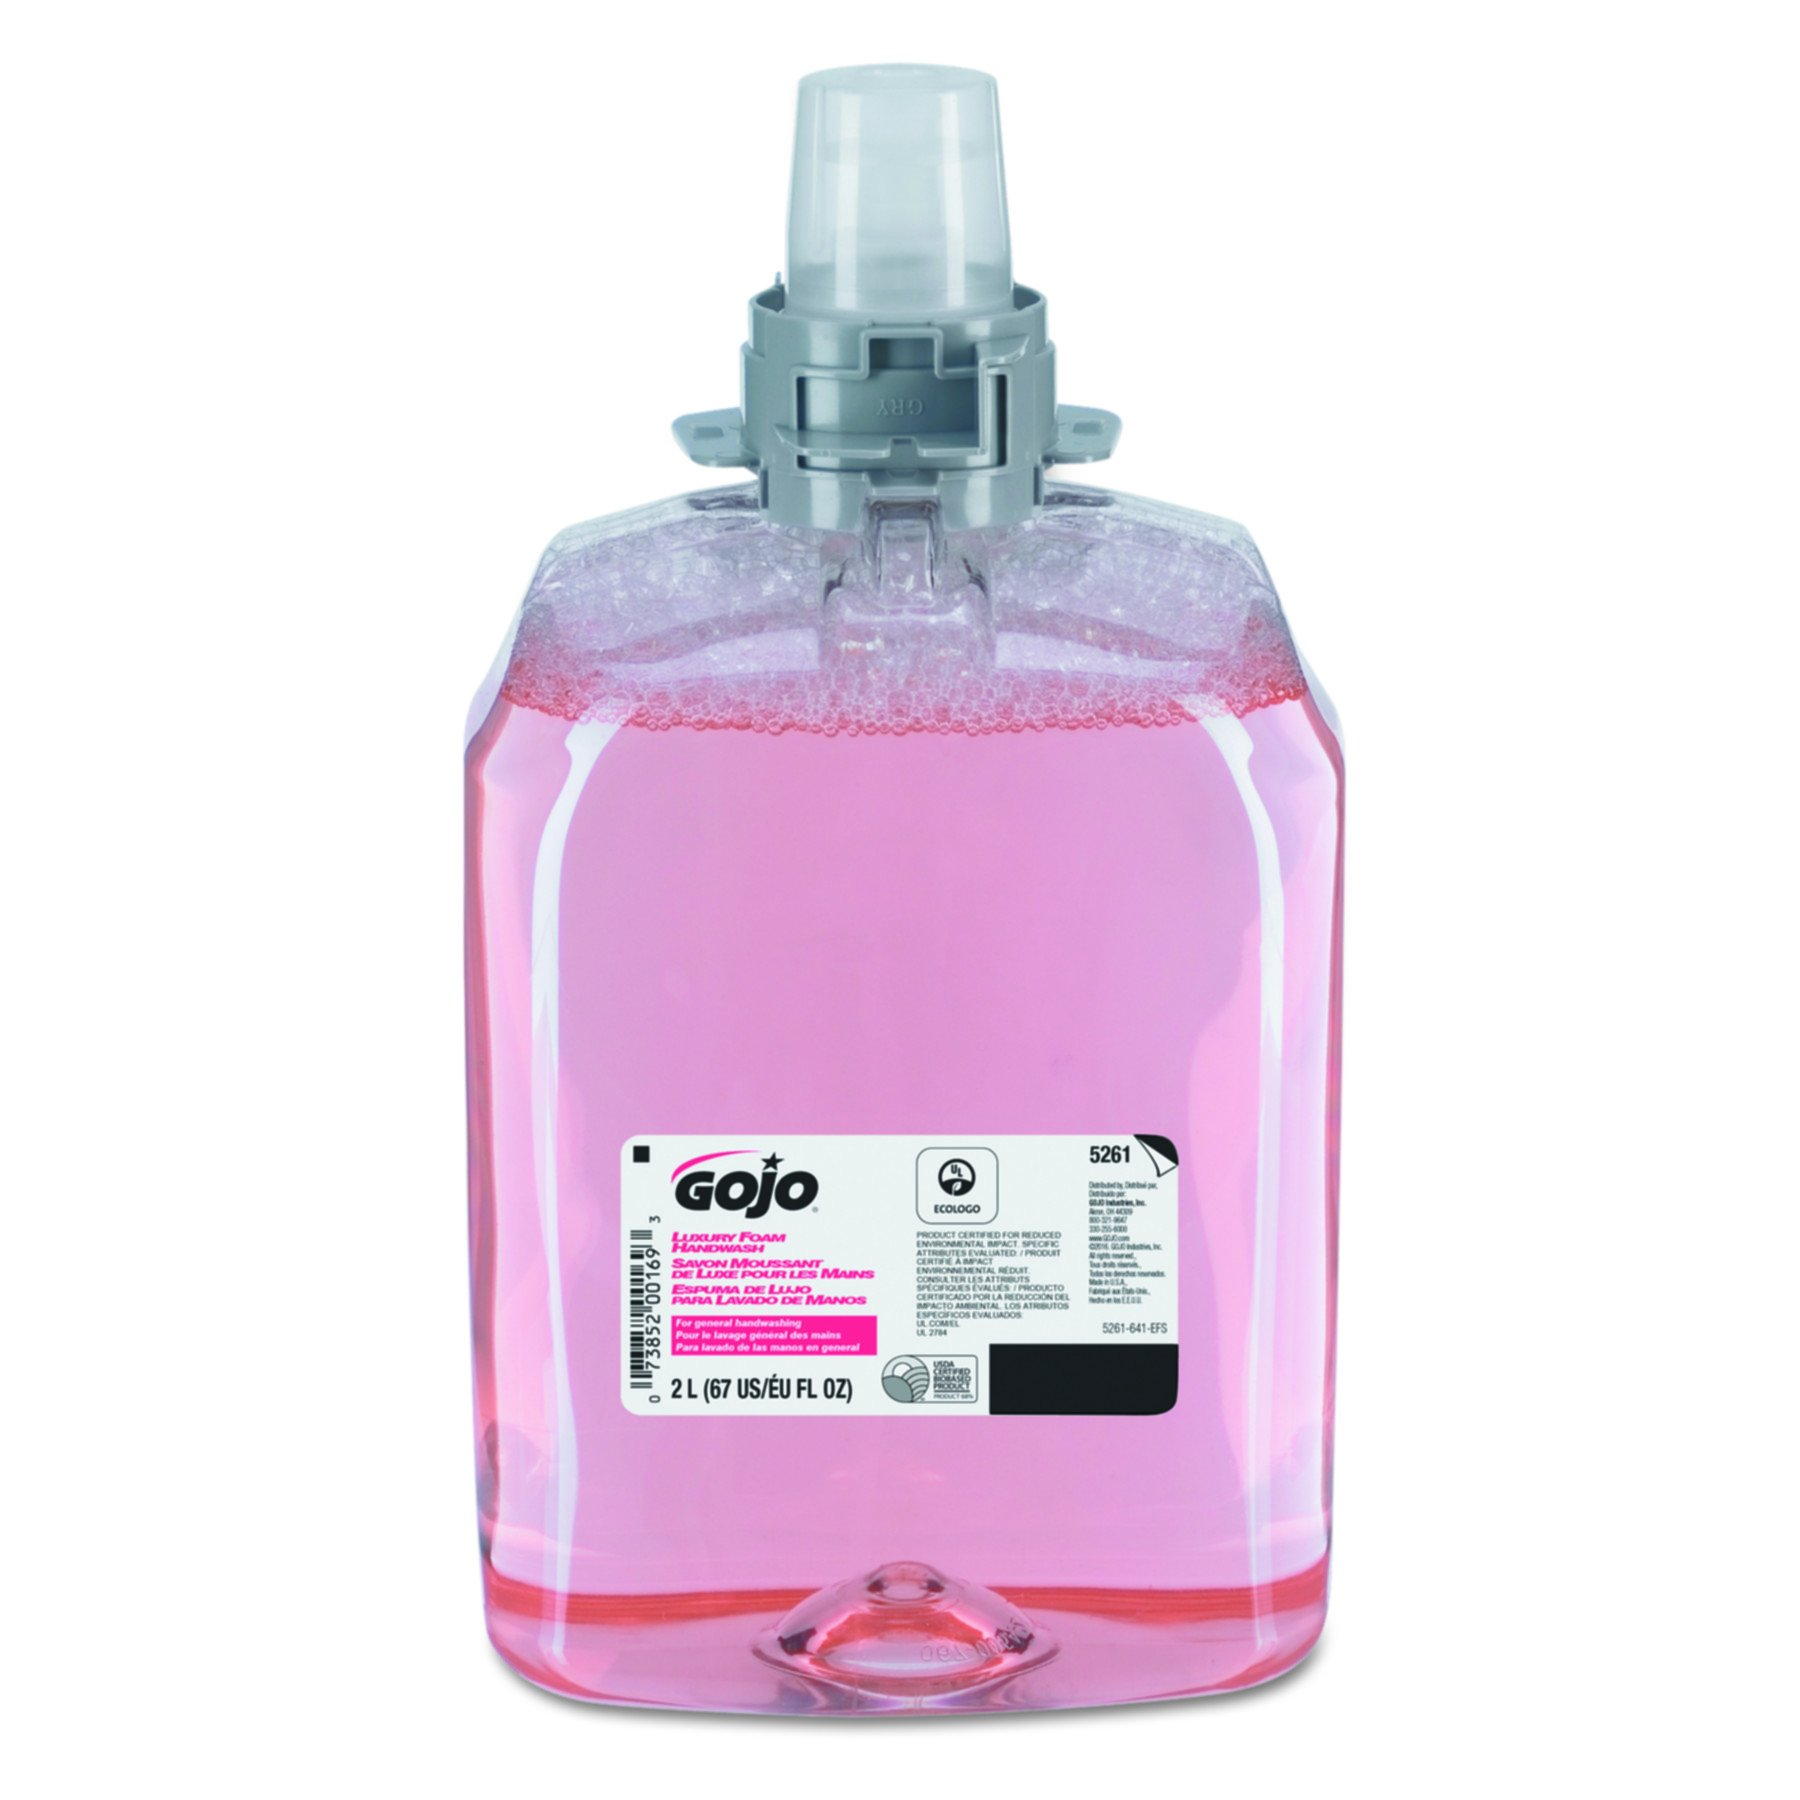 GOJO 5261-02 2000 mL Luxury Foam Handwash, FMX-20 Refill (Case of 2),Translucent Pink,Compatible with Dispenser #5250-06, 5255-06